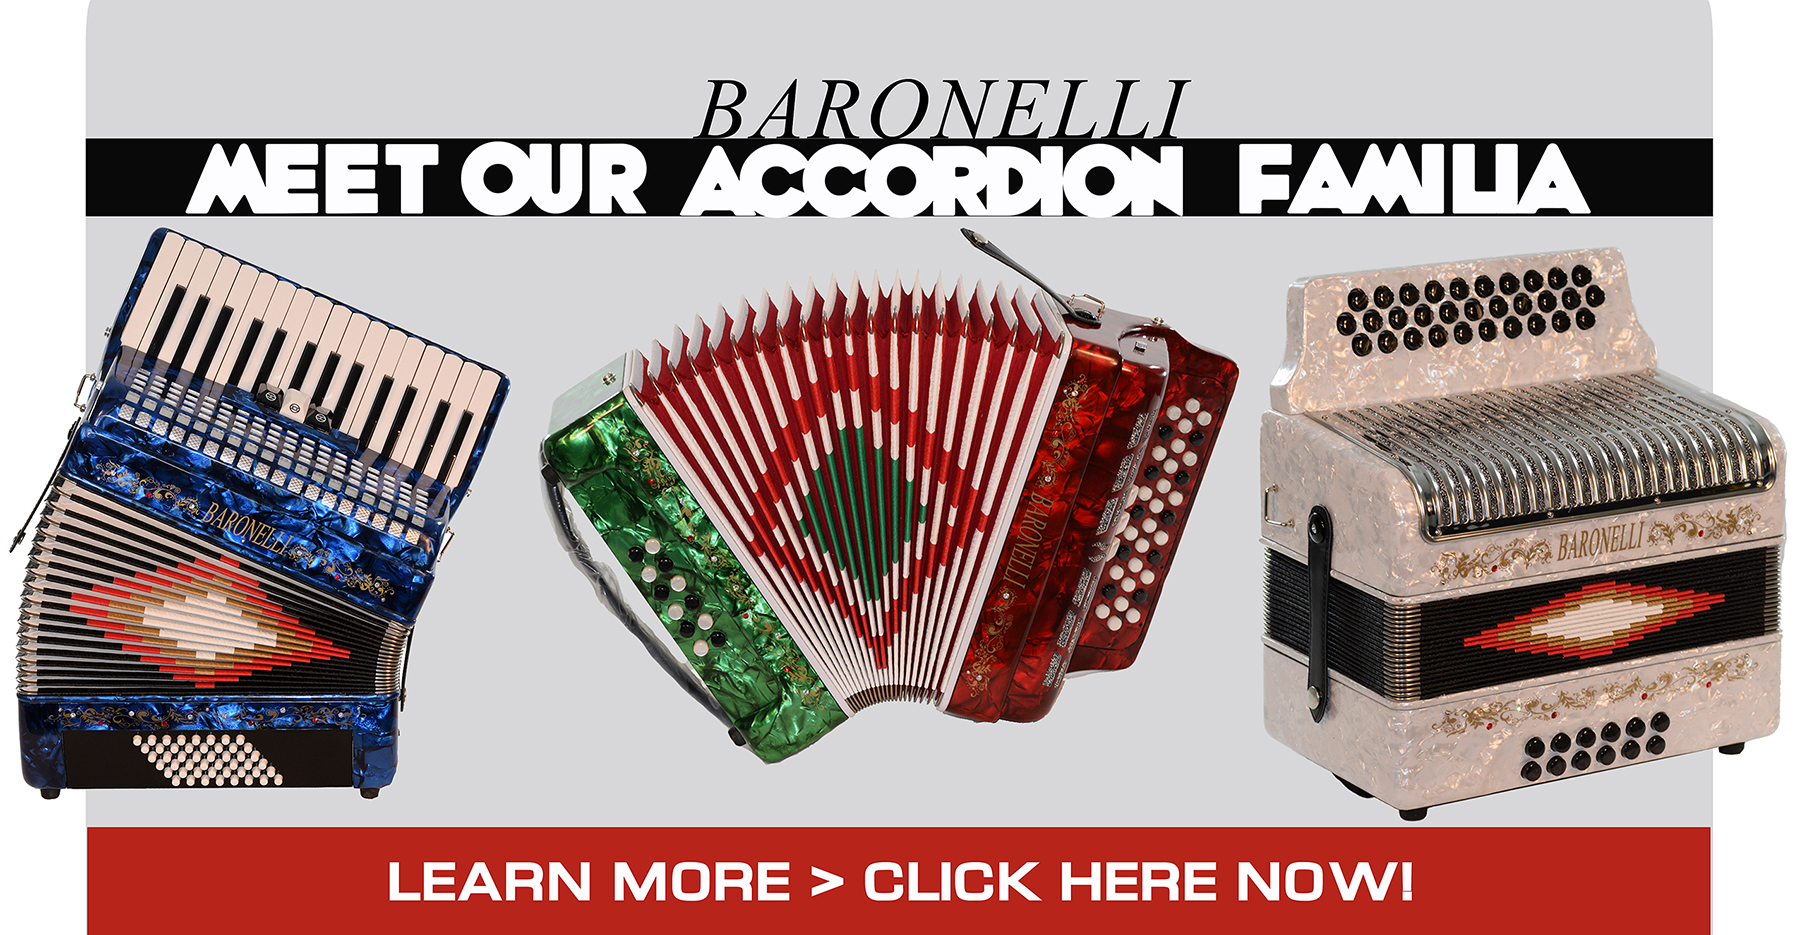 BARONELLI ACCORDION FAMILIA BRIDGECRAFT USA